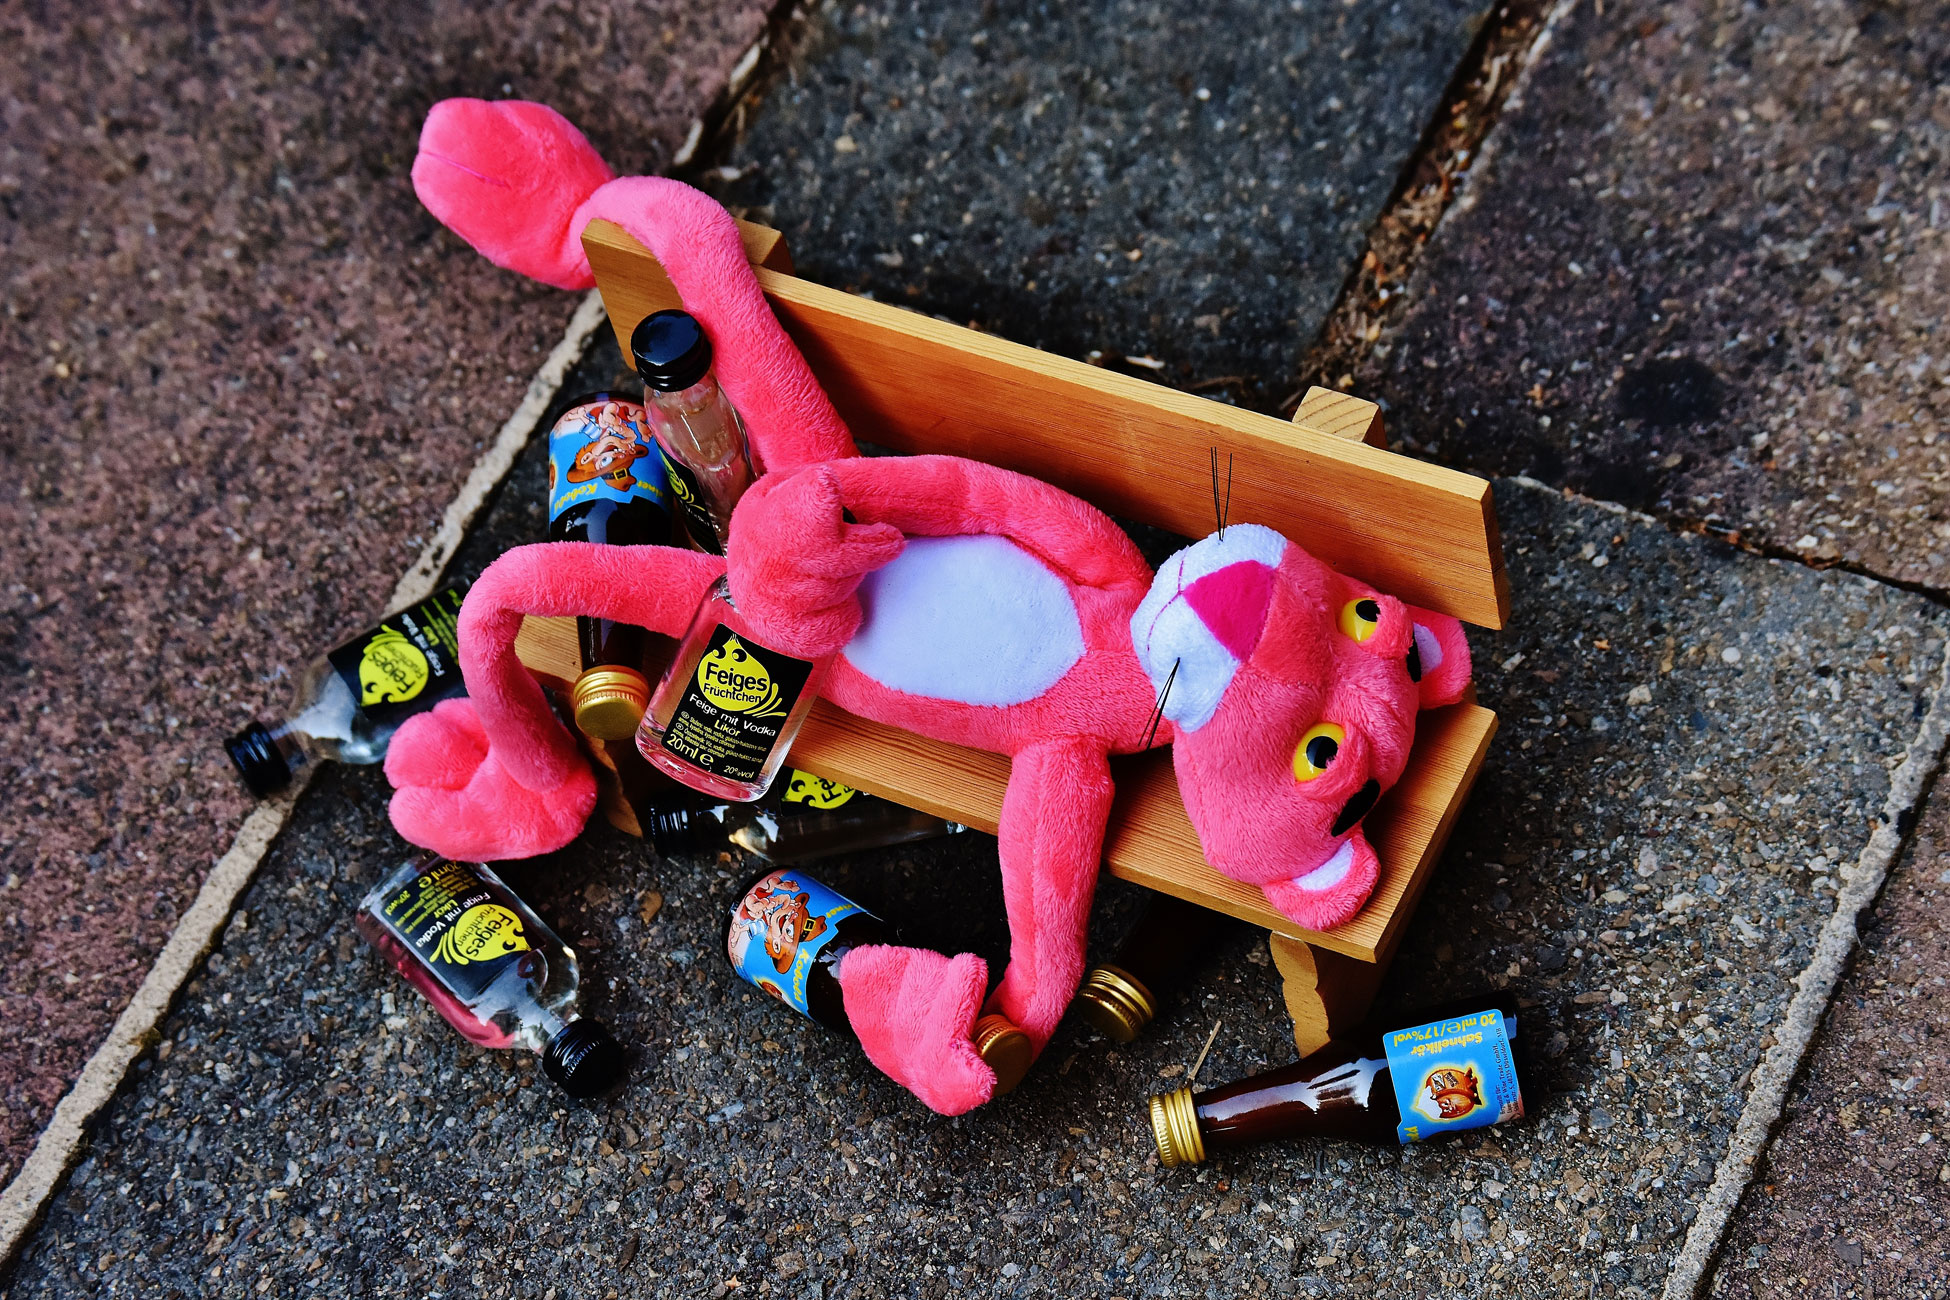 Pink panther plush toy positioned next to empty beer bottles